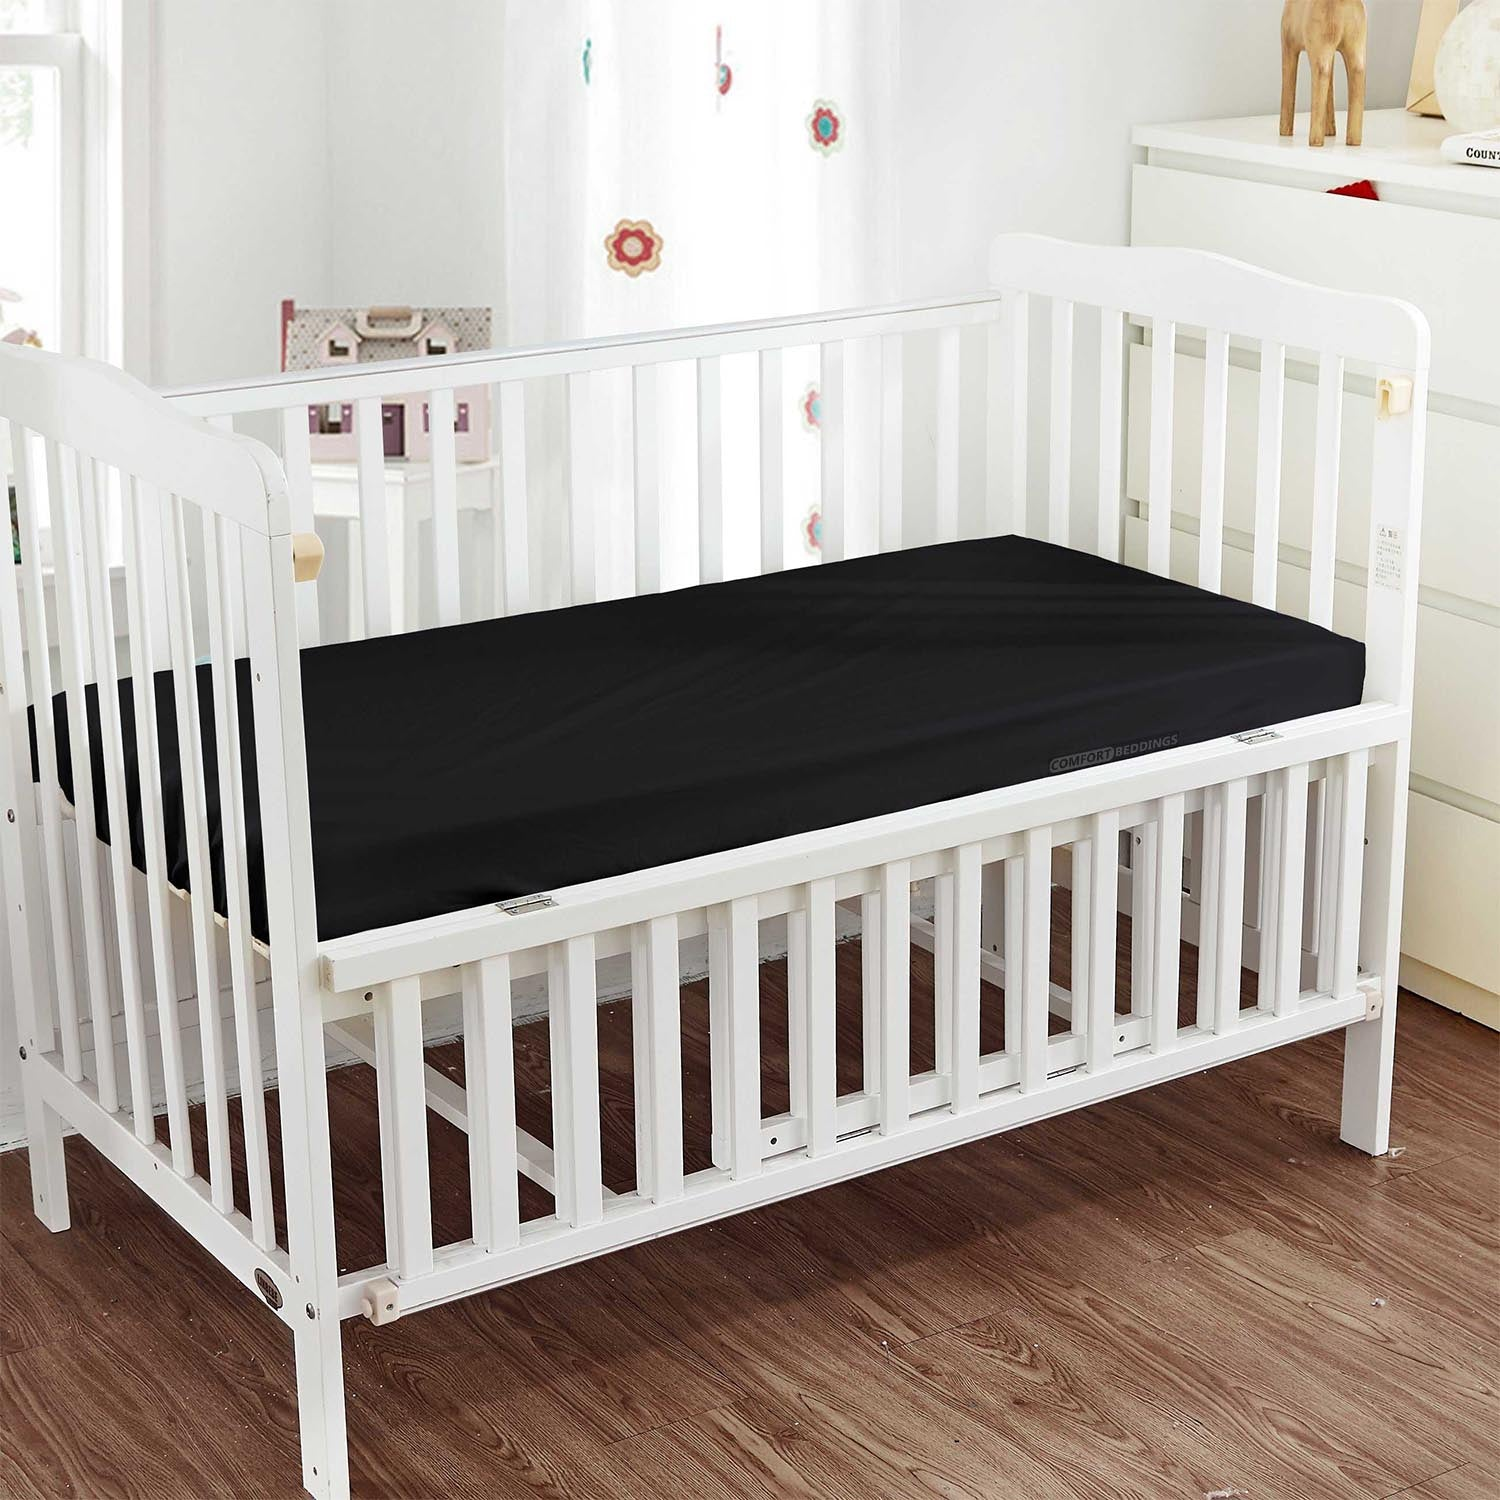 Classy Black Fitted Crib Sheets - 600TC